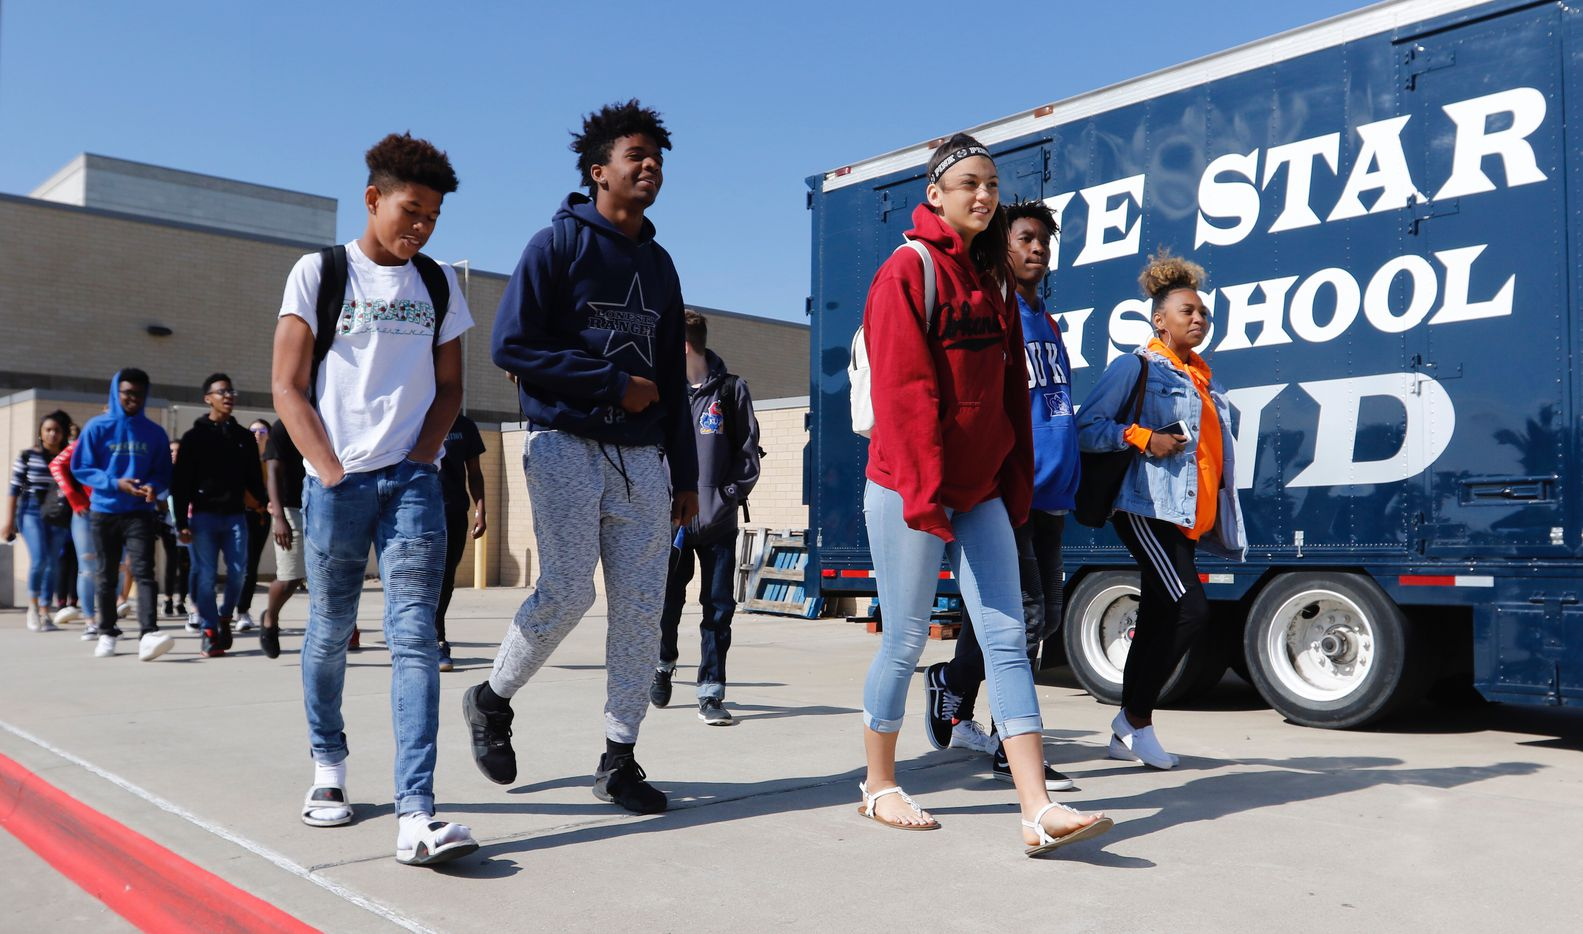 Students from Frisco ISD's Lone Star High School students left the school during the National School Walkout on  Friday morning.